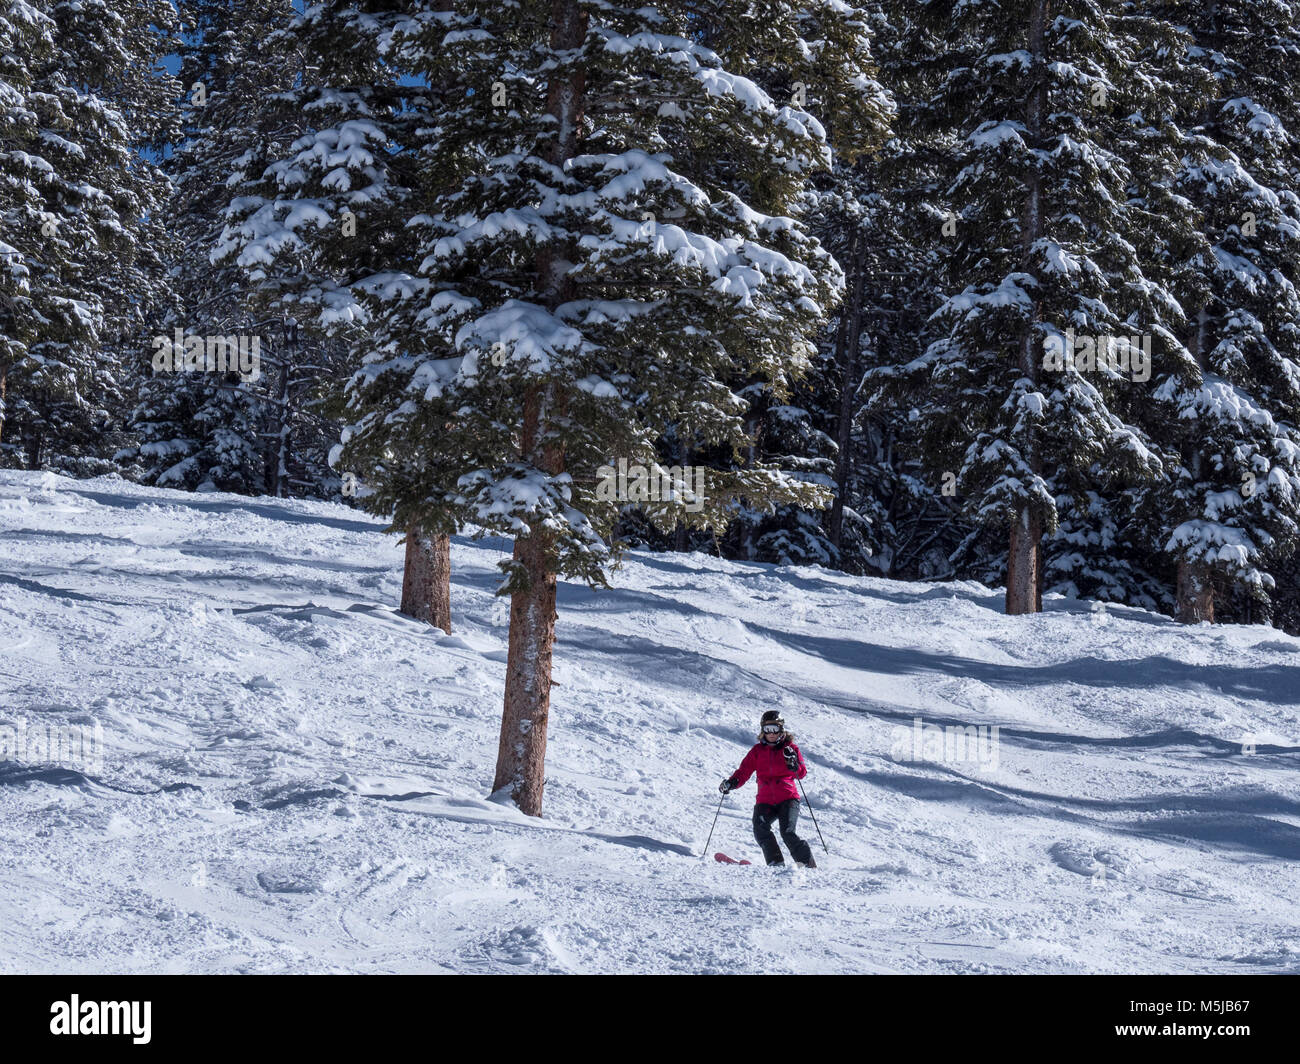 Skier skis The Star trail, winter, Blue Sky Basin, Vail Ski Resort, Vail, Colorado. - Stock Image